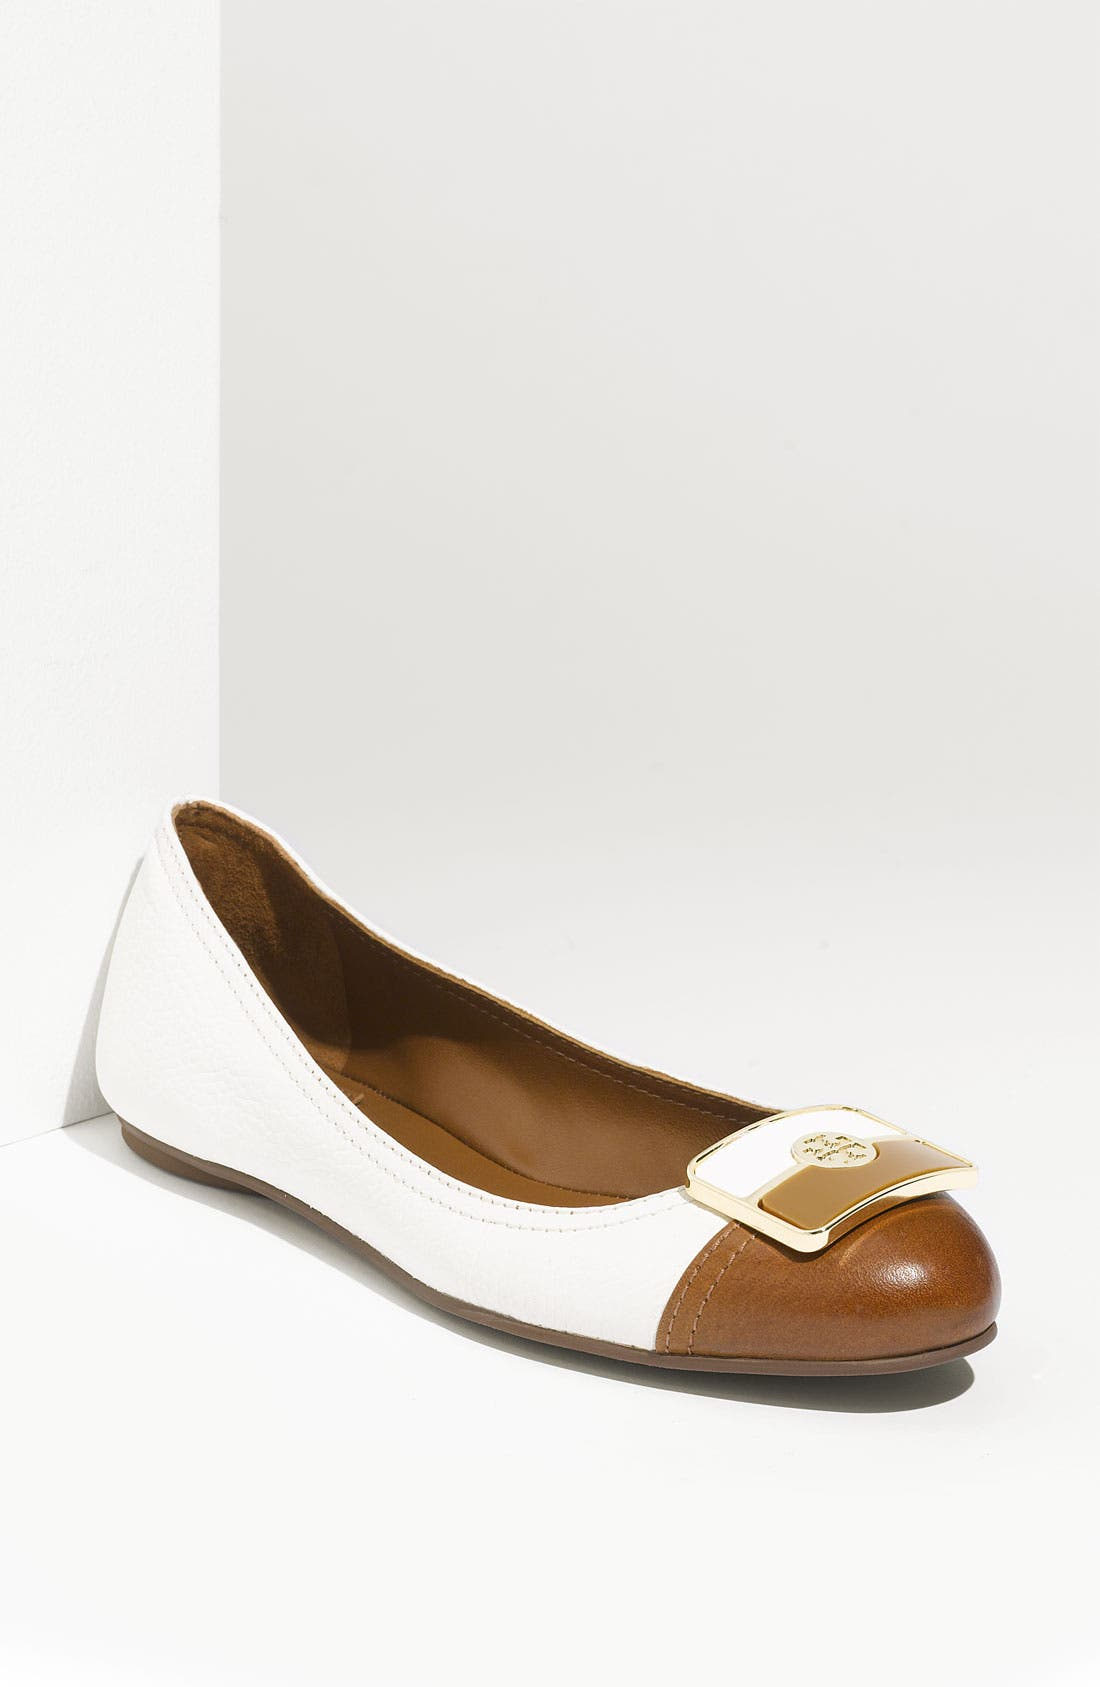 Alternate Image 1 Selected - Tory Burch 'Colette' Ballet Flat